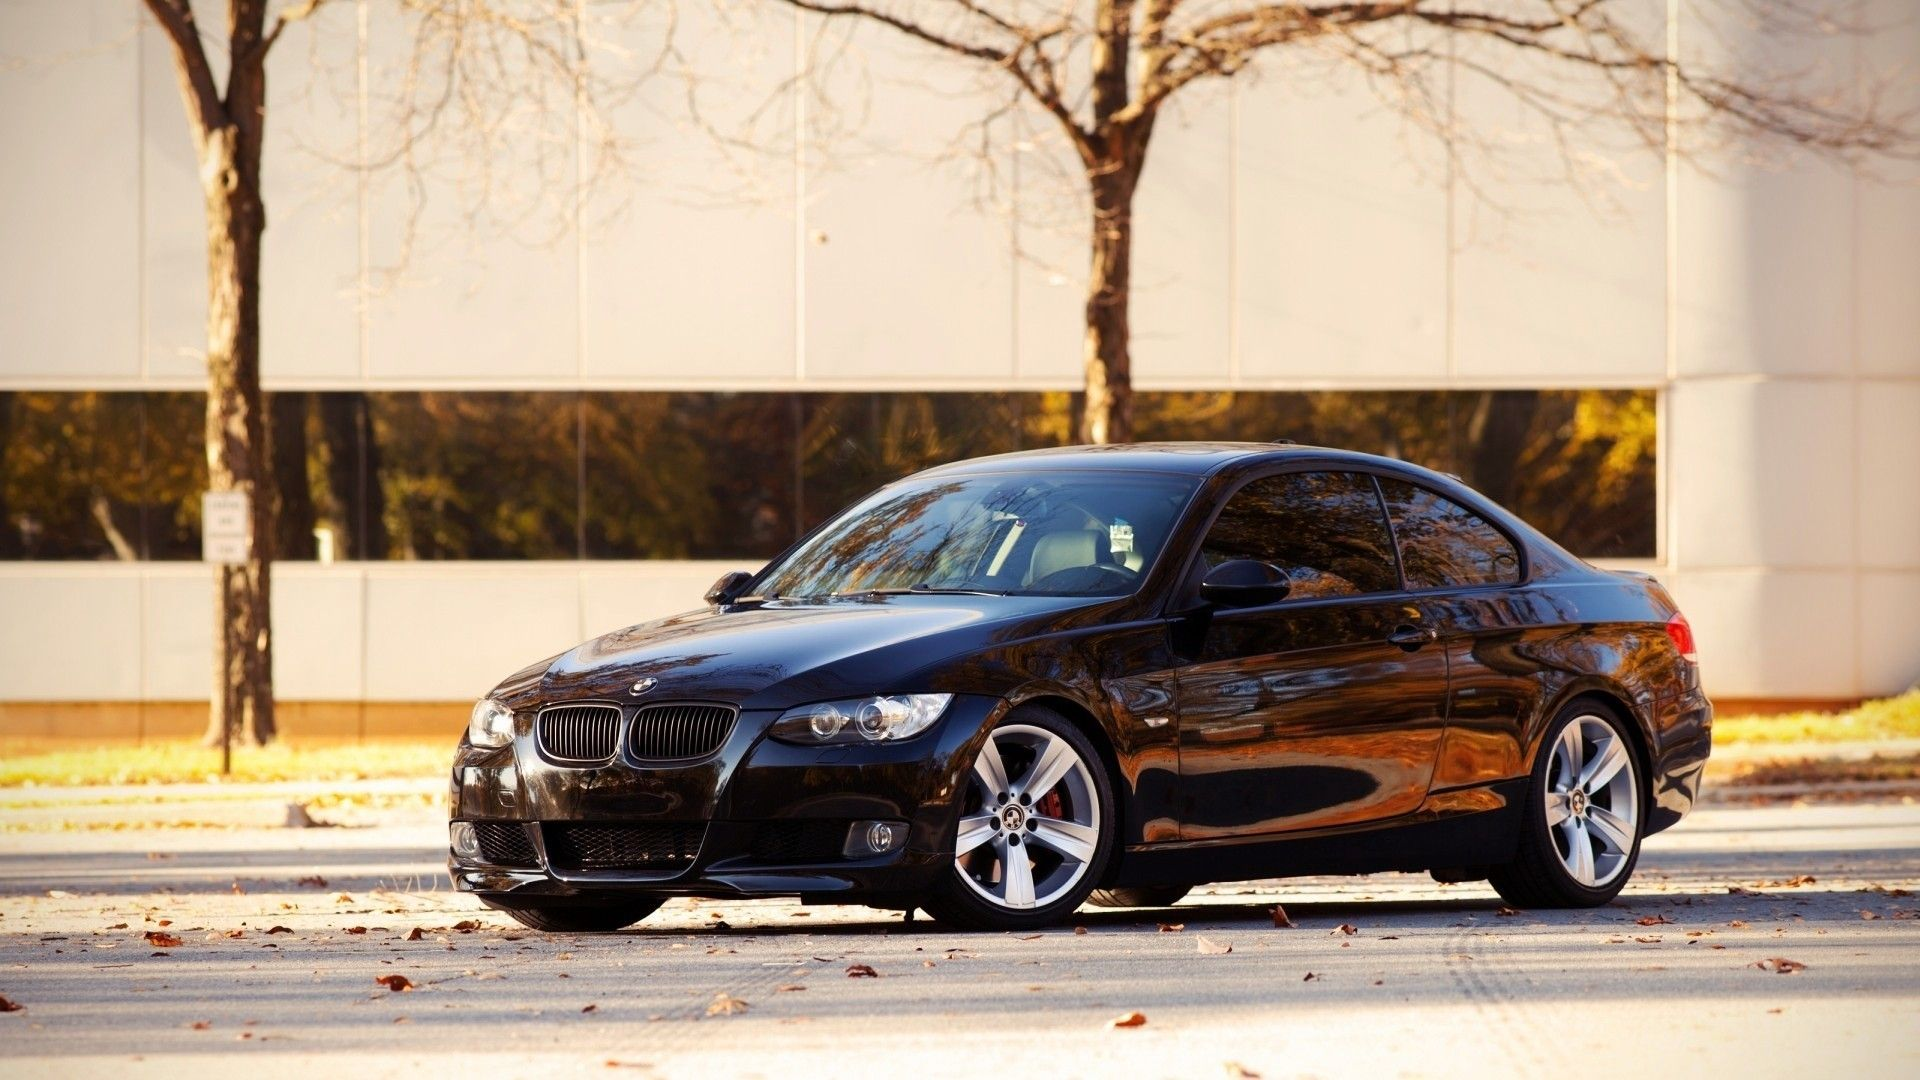 Bmw cars vehicles m3 e92 1920x1080 cars vehicles e92 via www